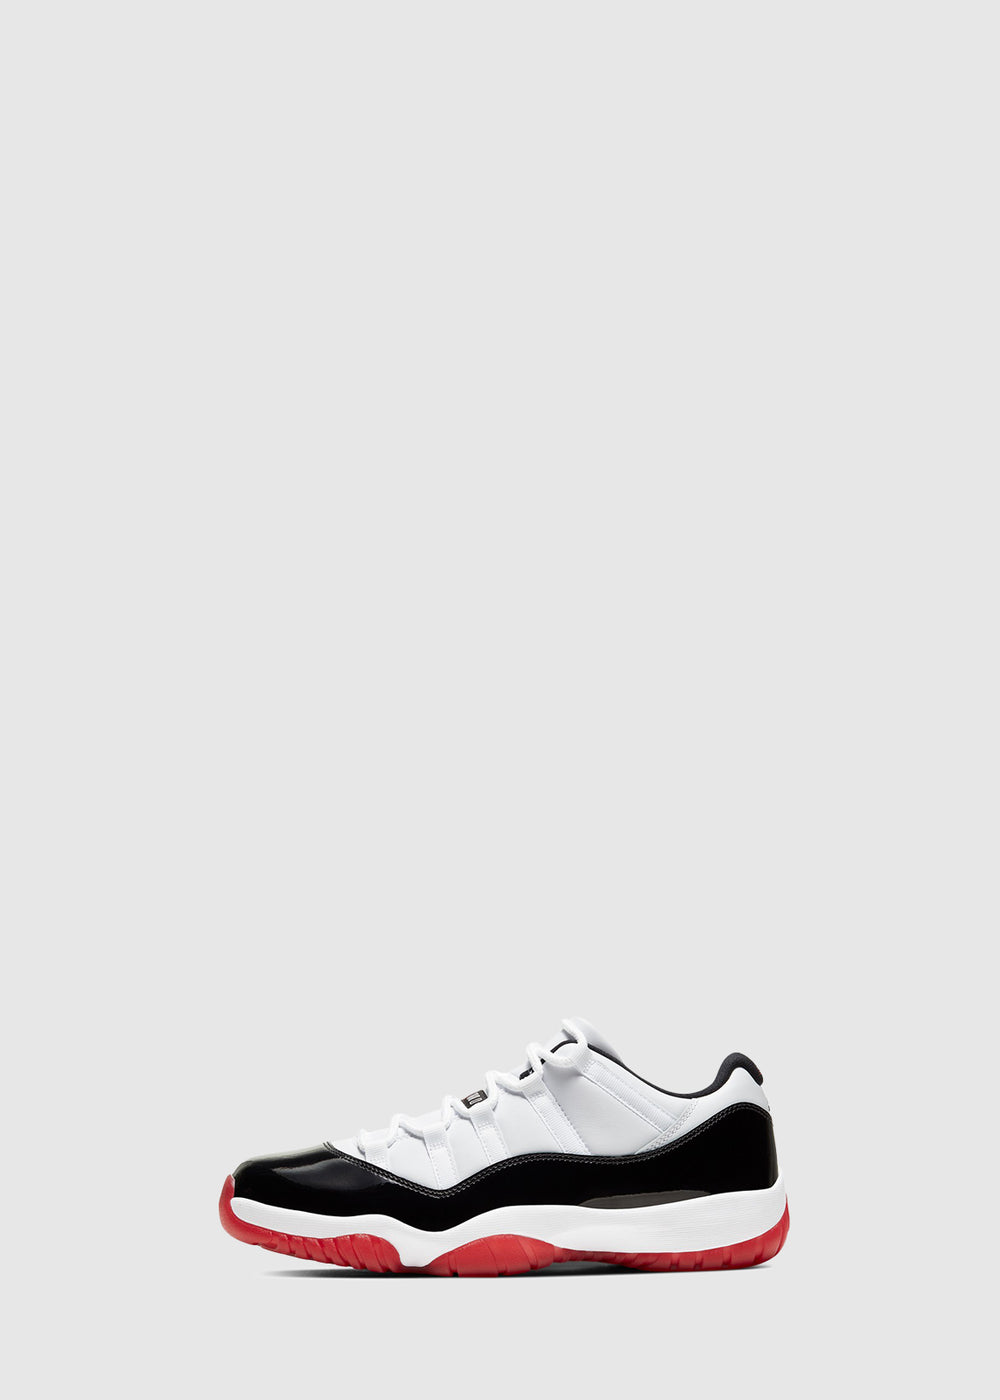 aj11-low-gs-wht-red-1